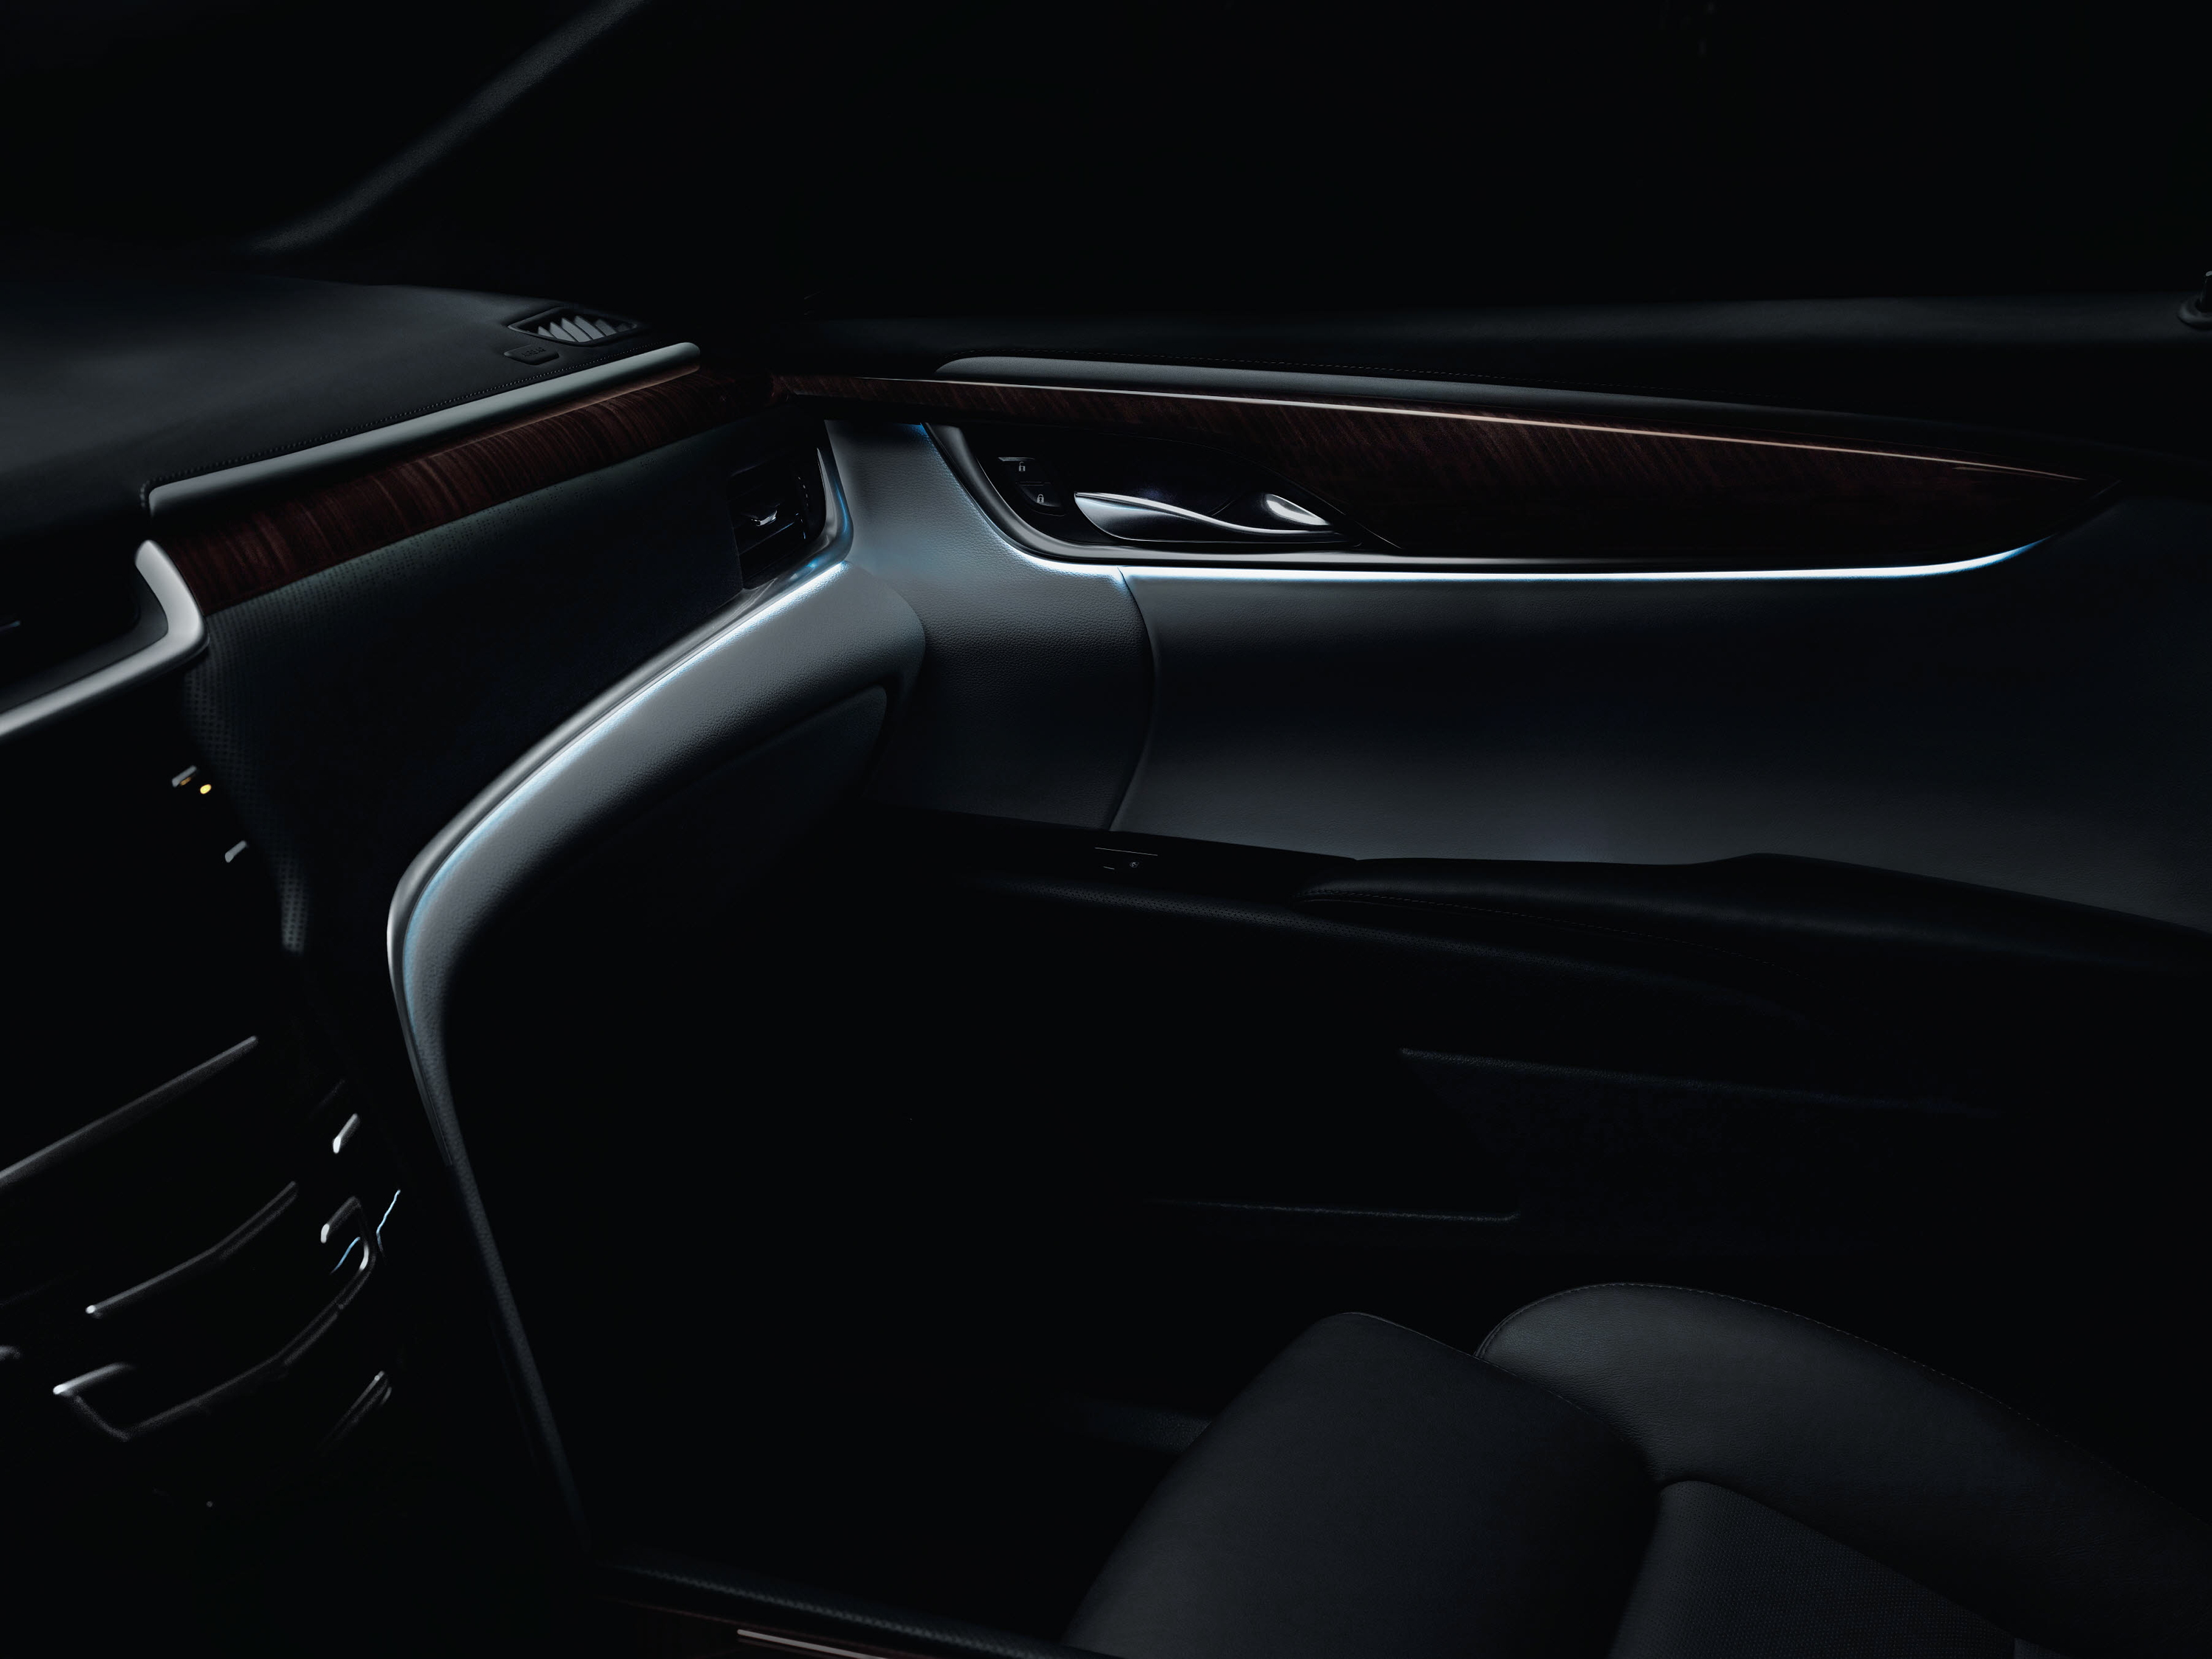 cadillac xts lighting reflects luxury and inspiration accent ambient lighting